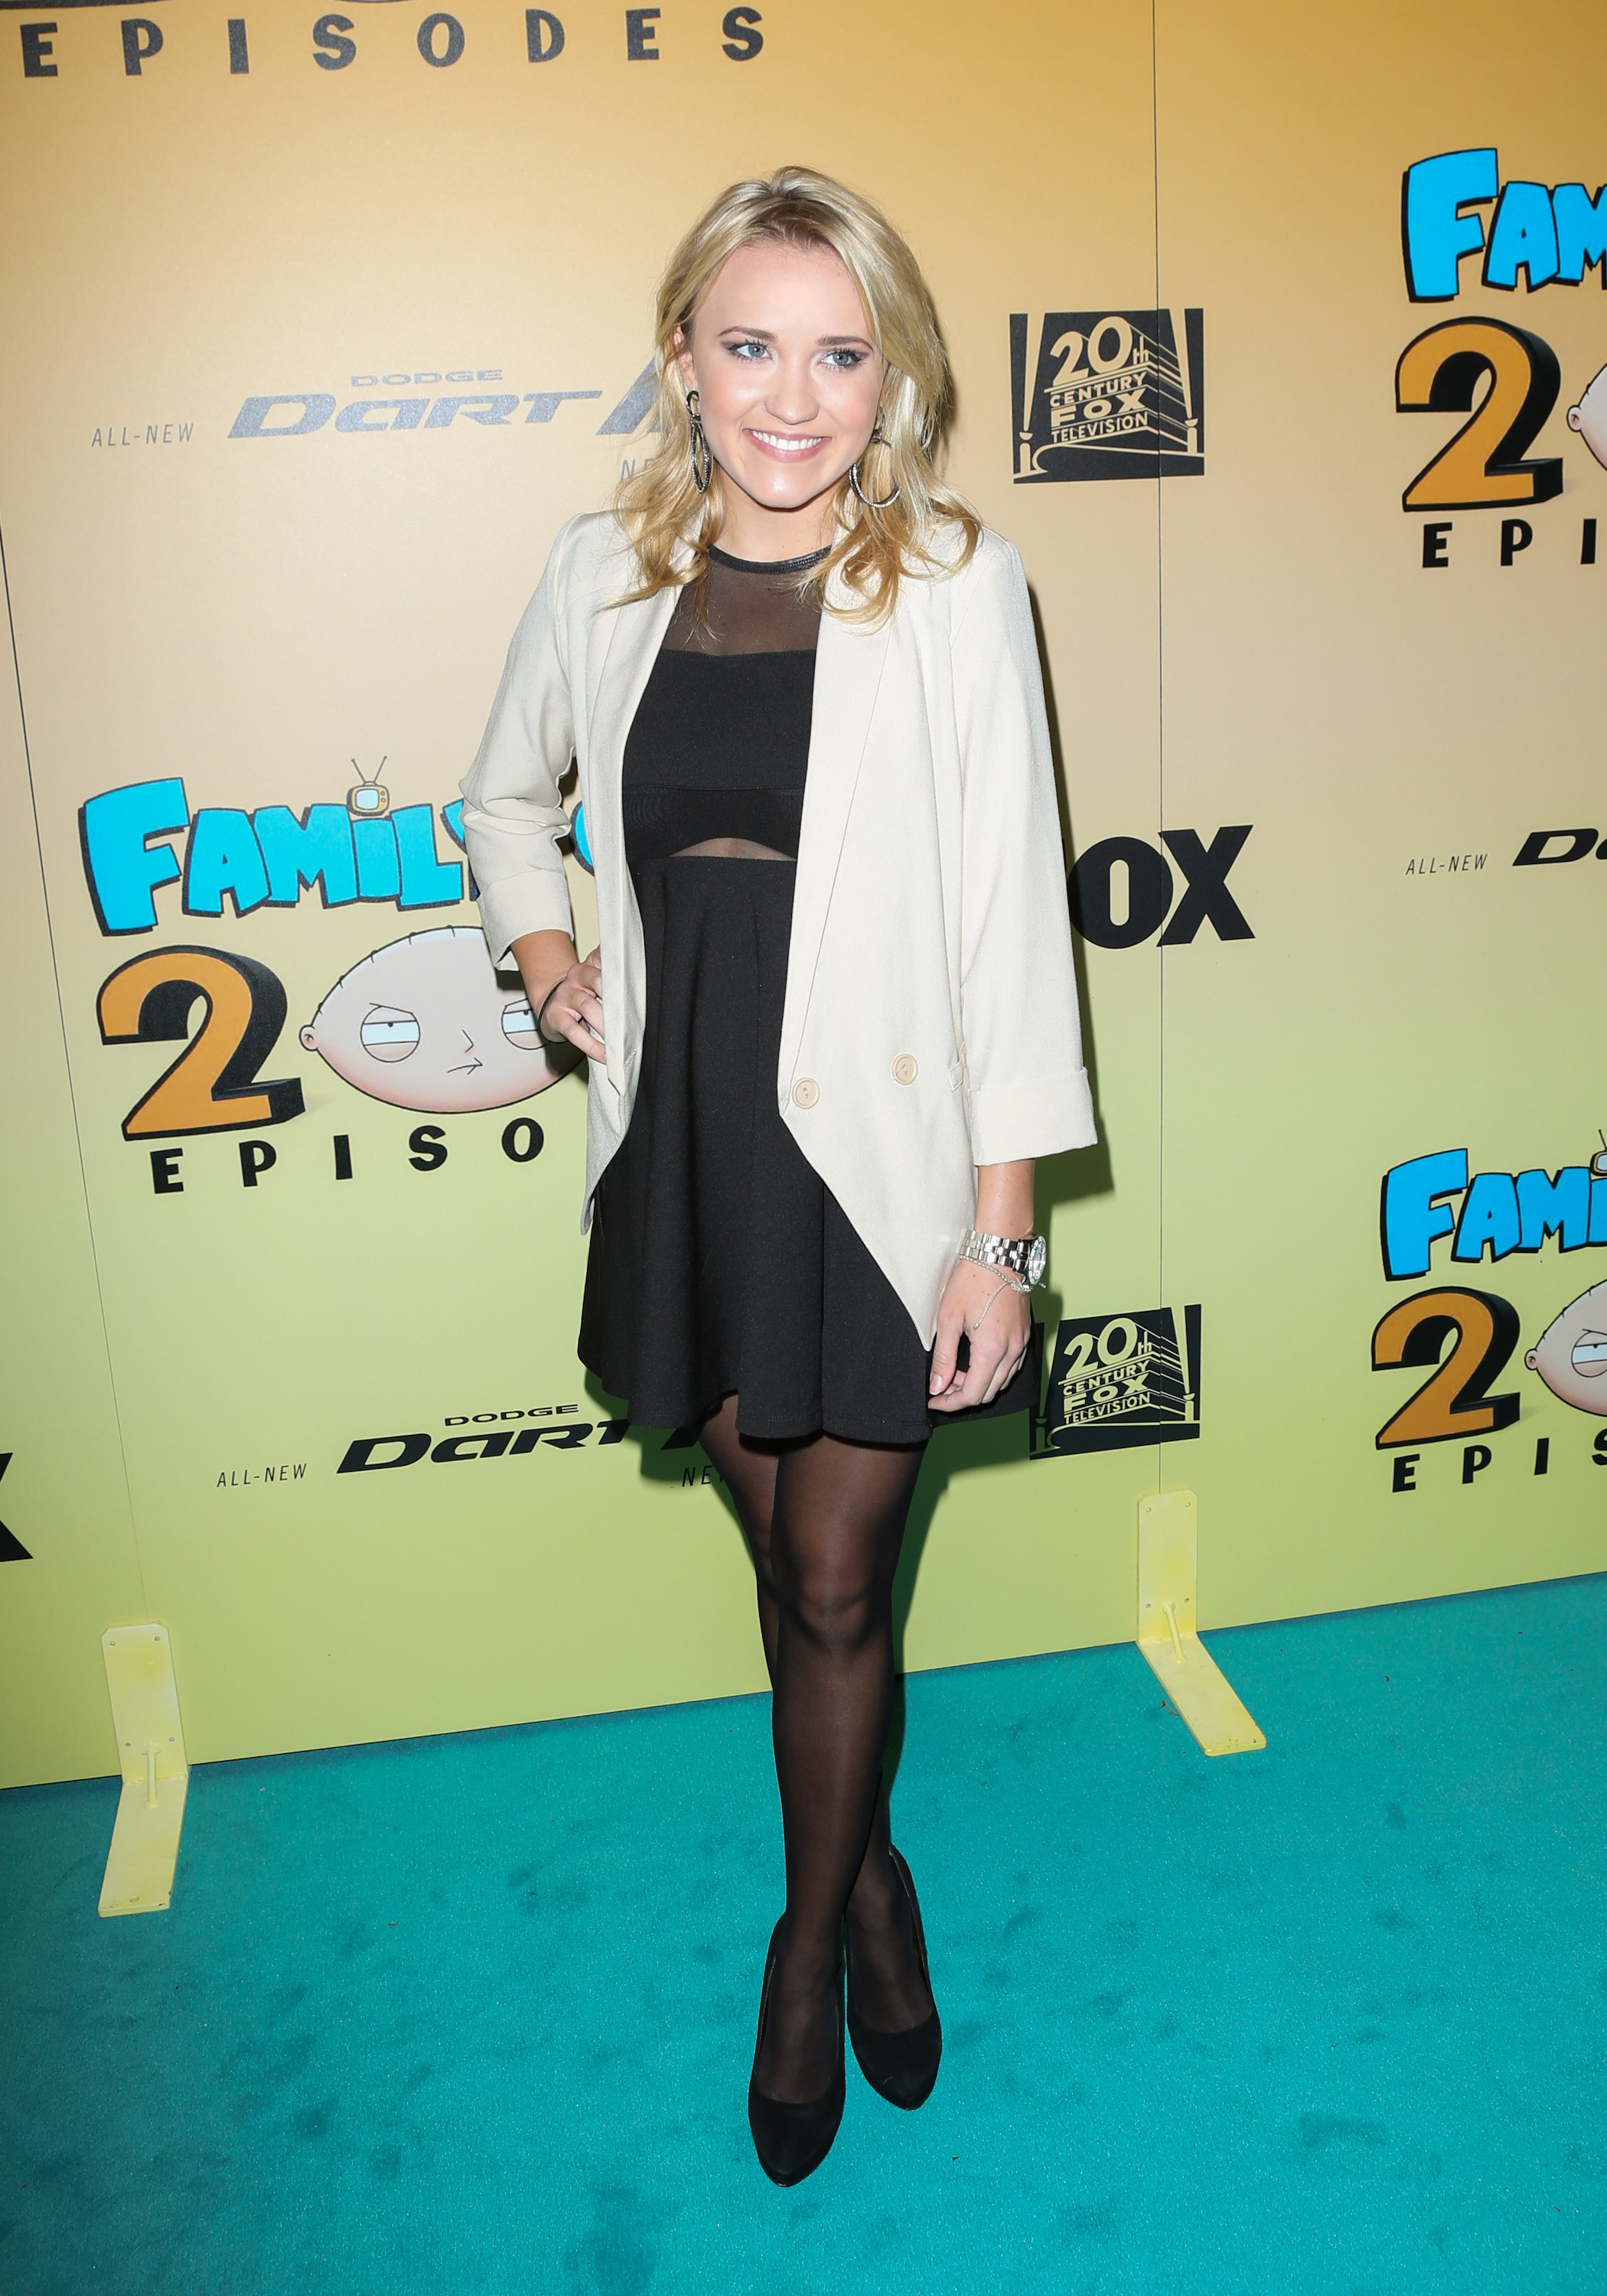 Emily Osment photo 56 of 94 pics